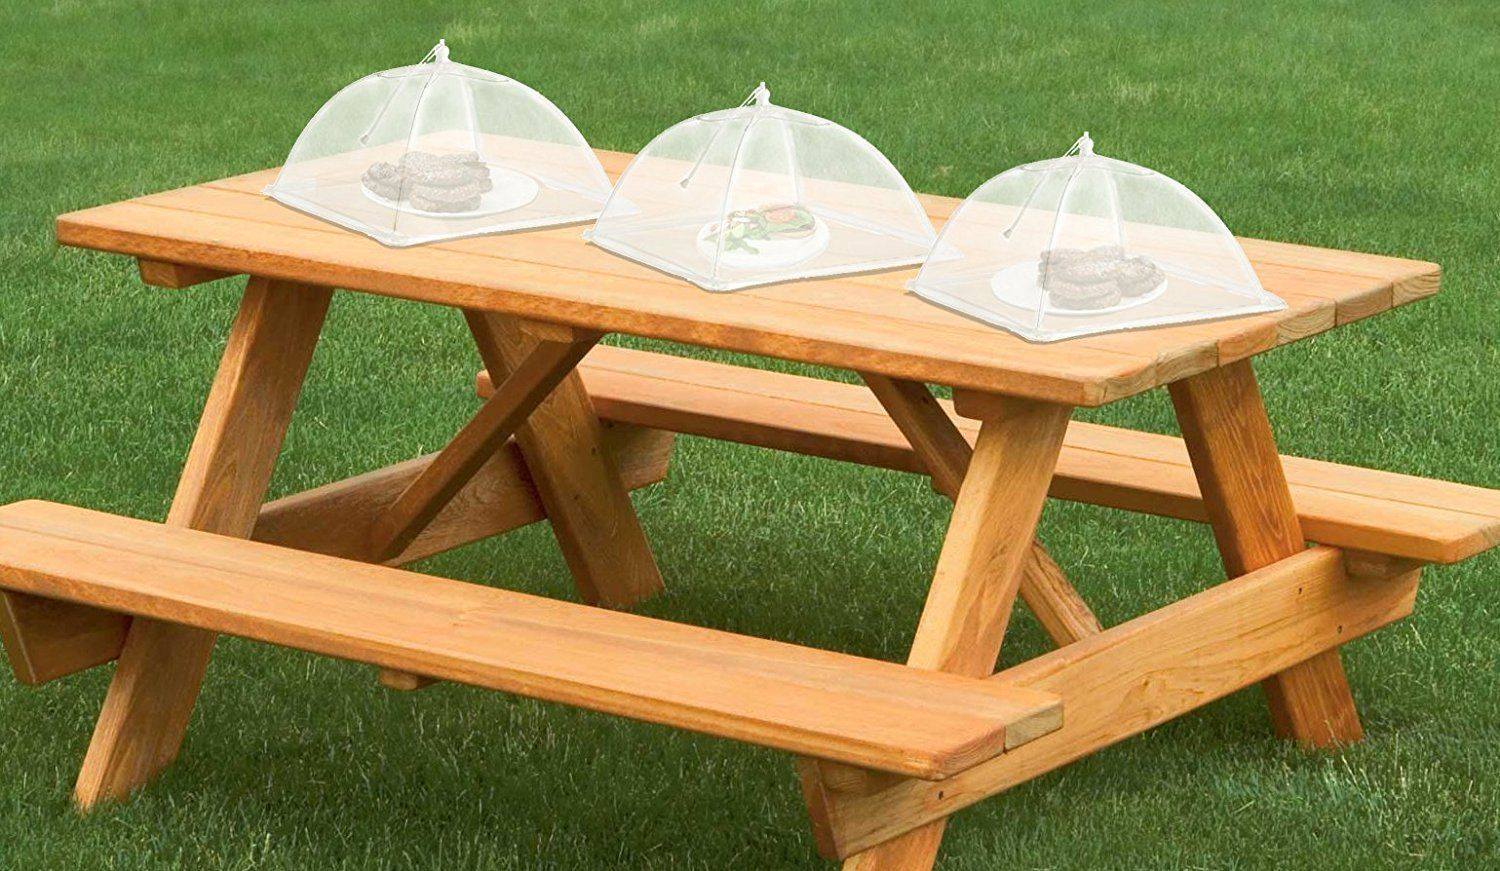 Tents And Events Small Woodworking ProjectsWoodworking CraftsEasy Wood ProjectsKids